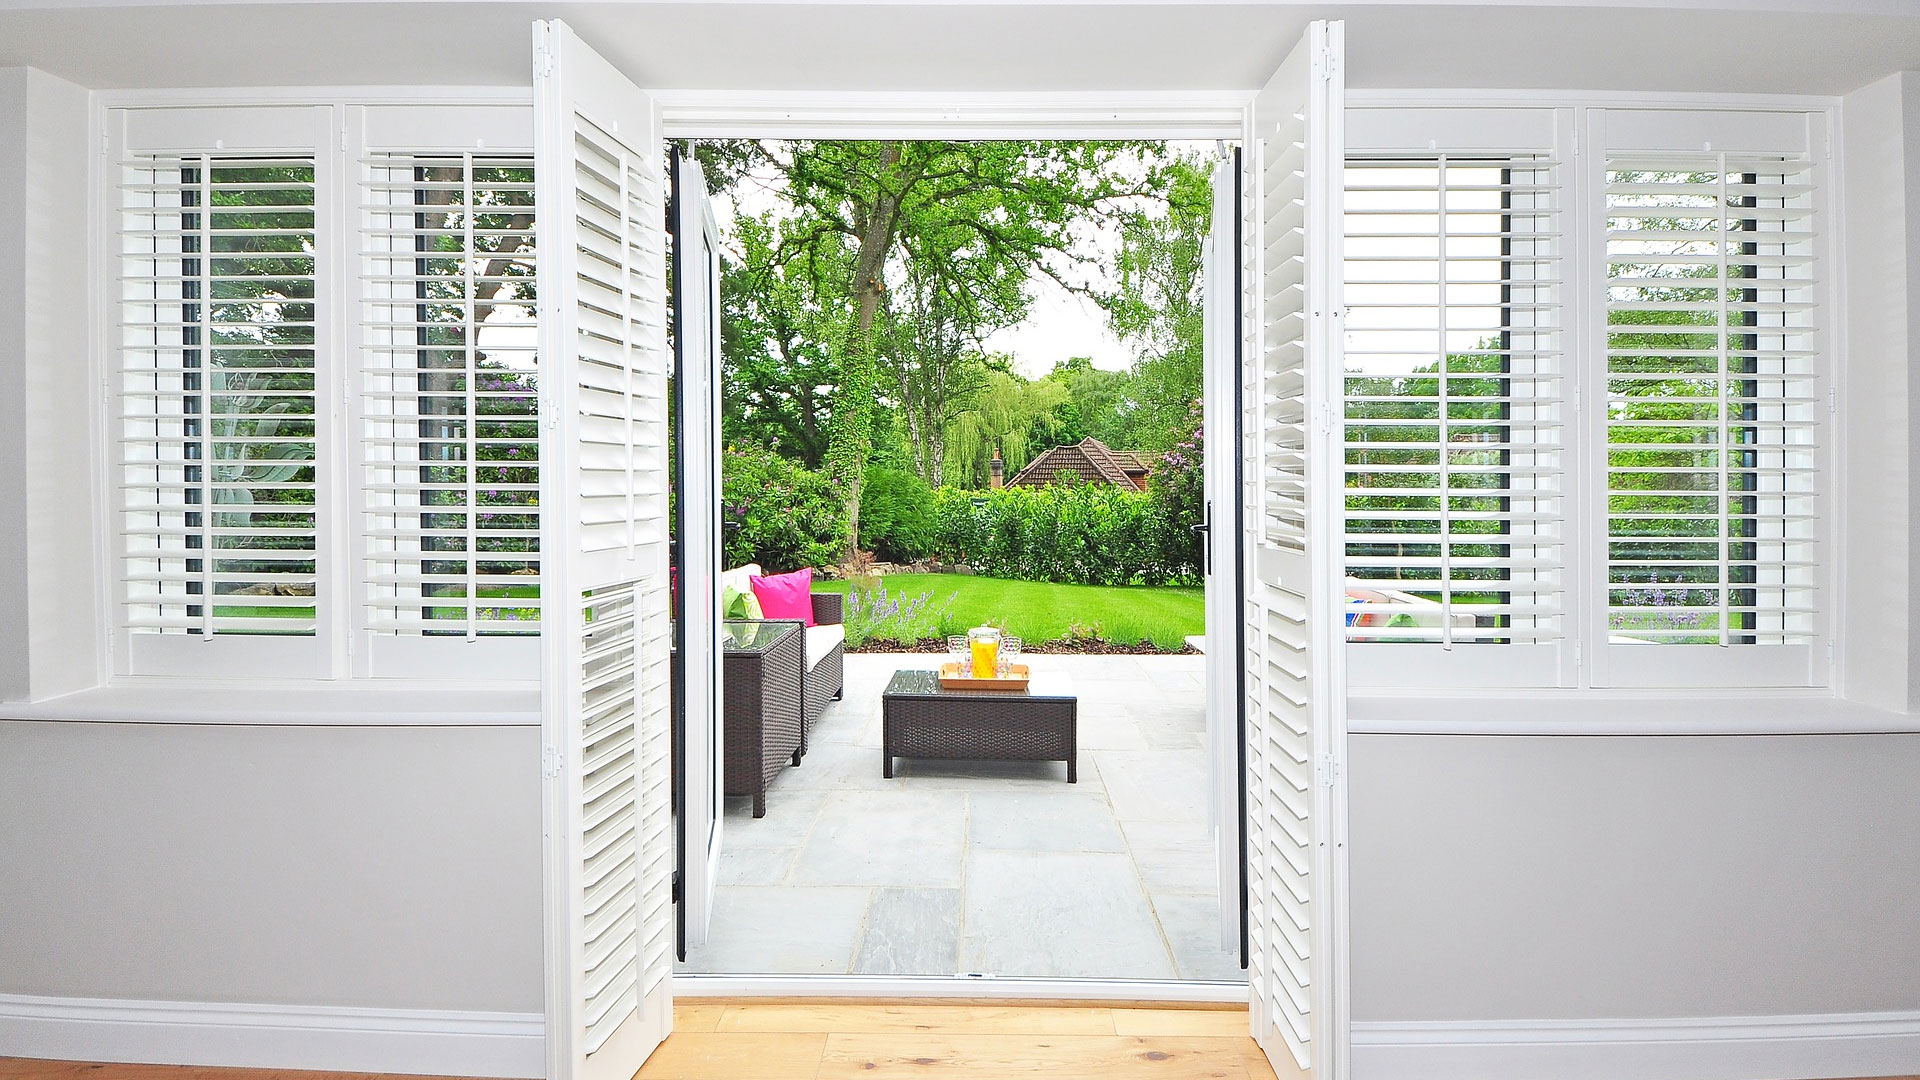 Platation shutters - How to clean plantation shutters?